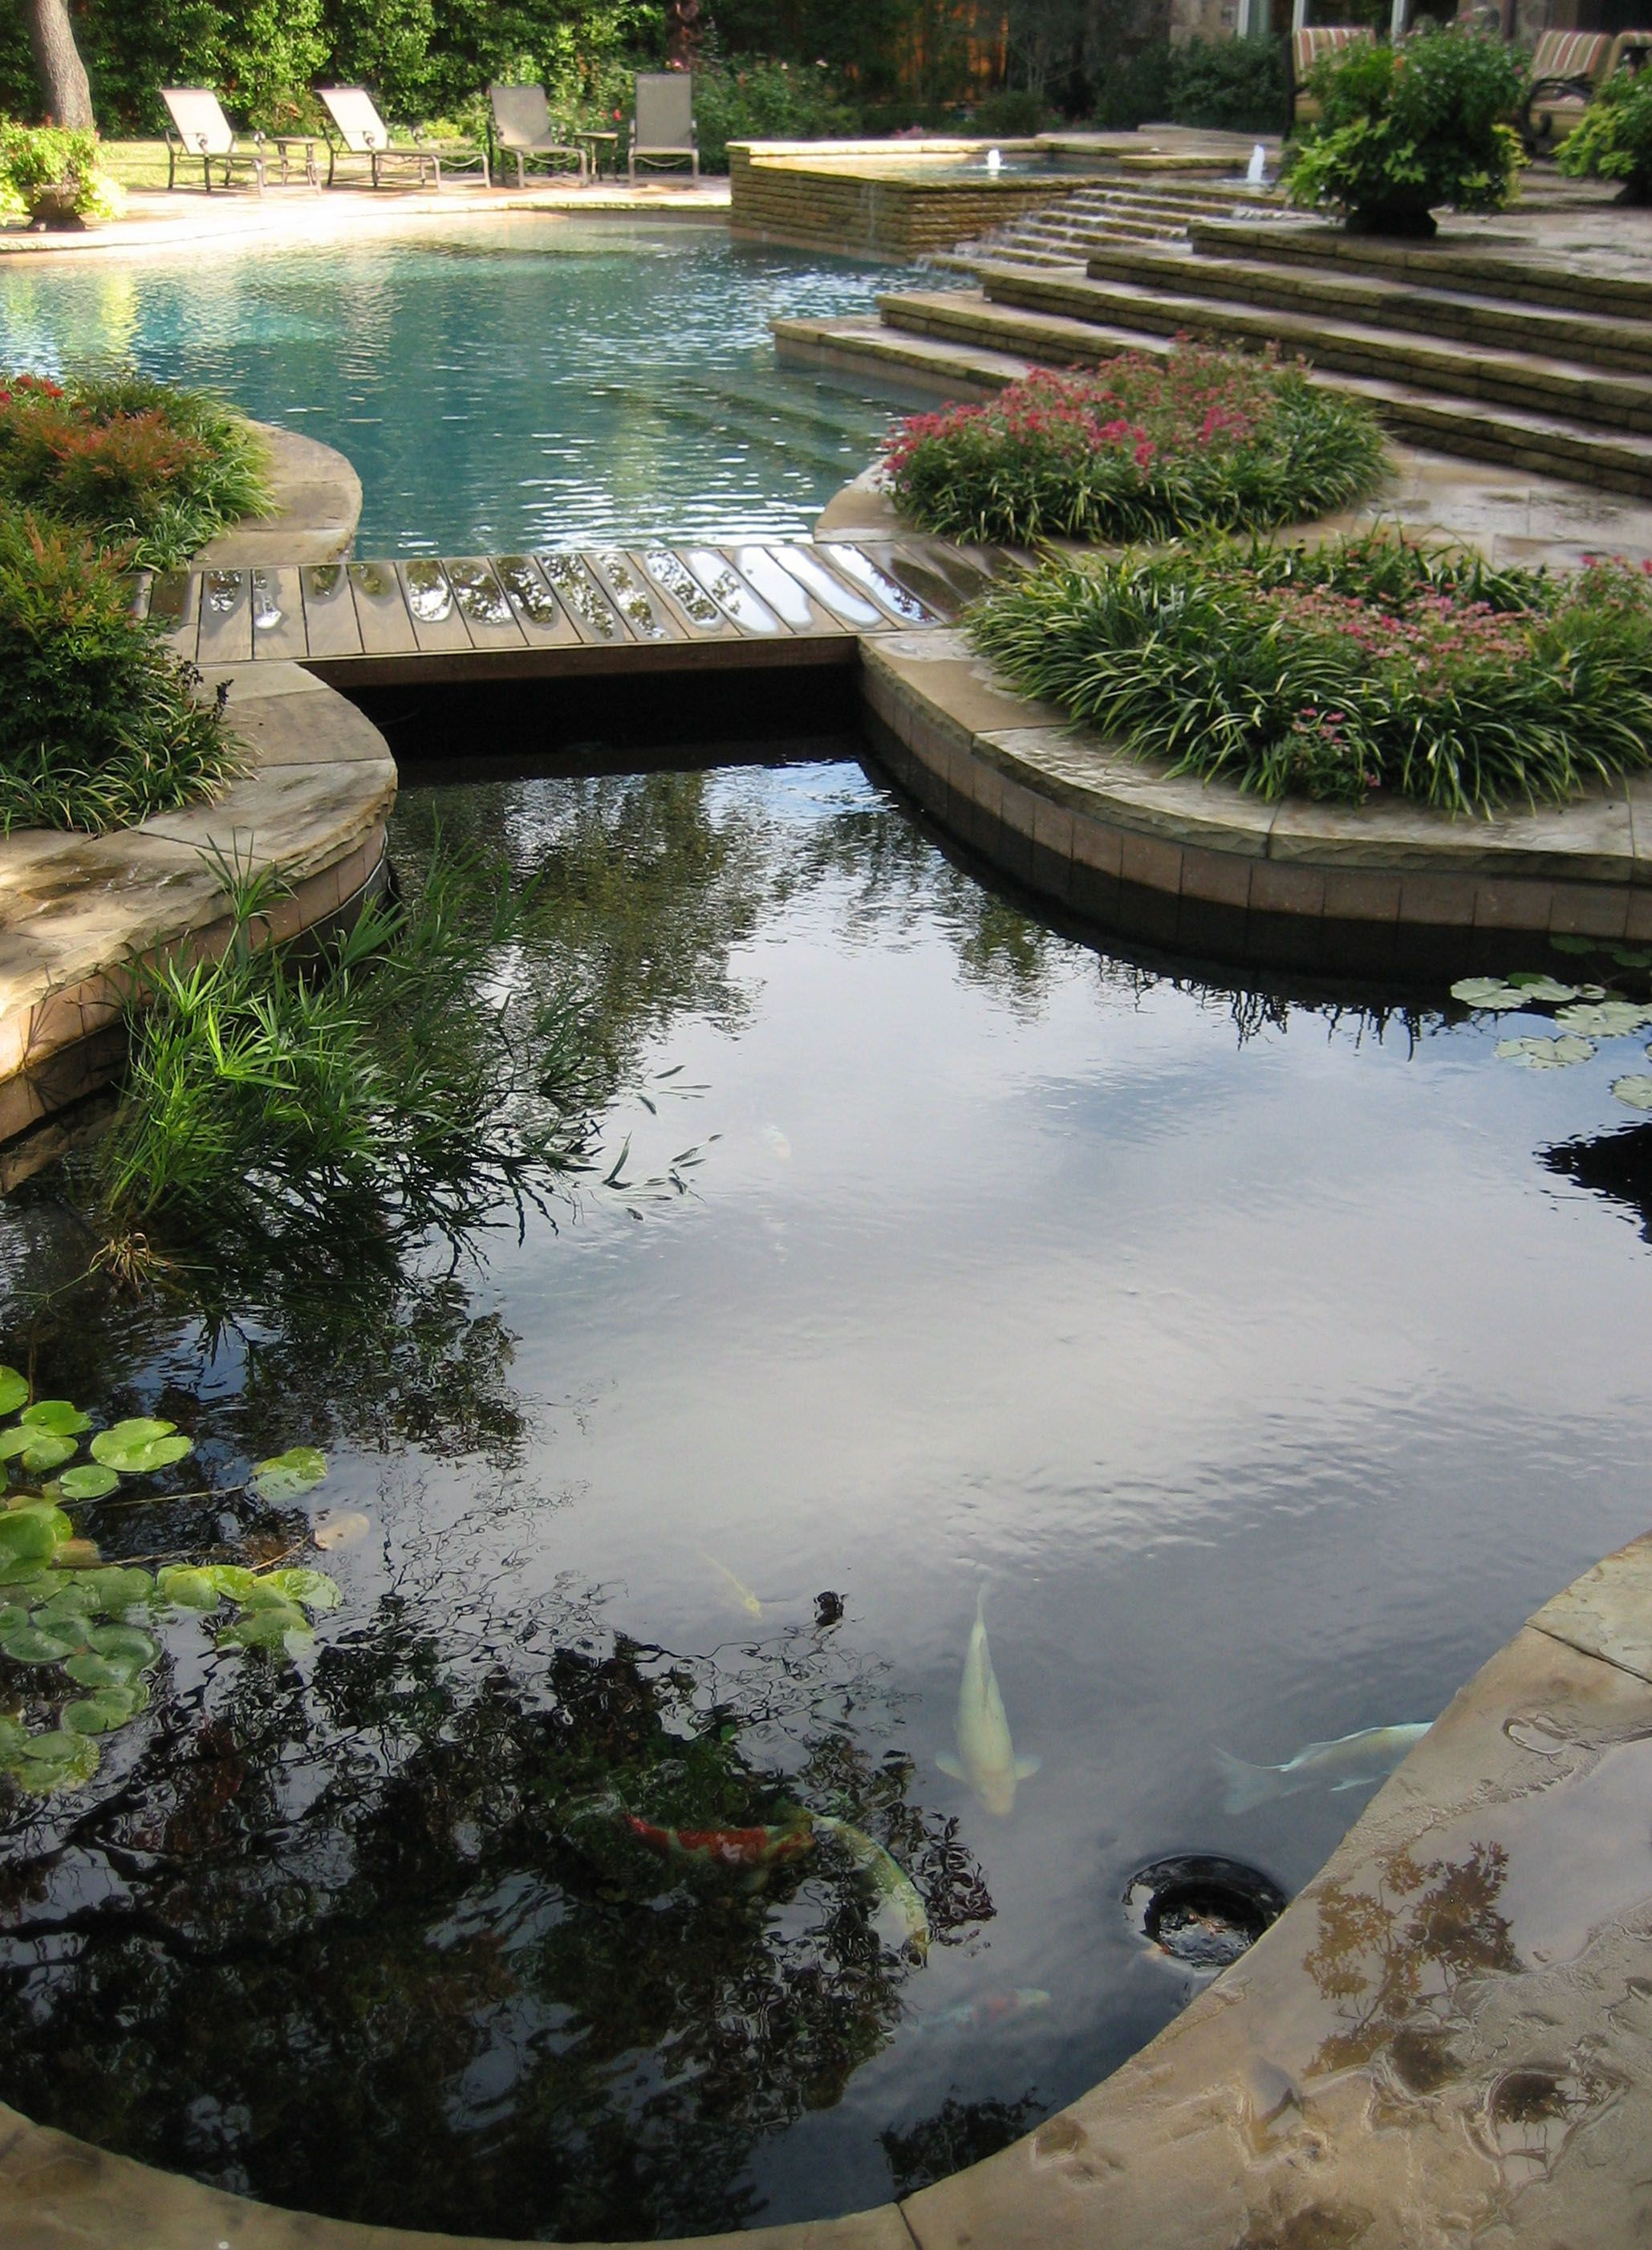 Koi pond and pool design with hidden barrier underneath for Koi fish in pool